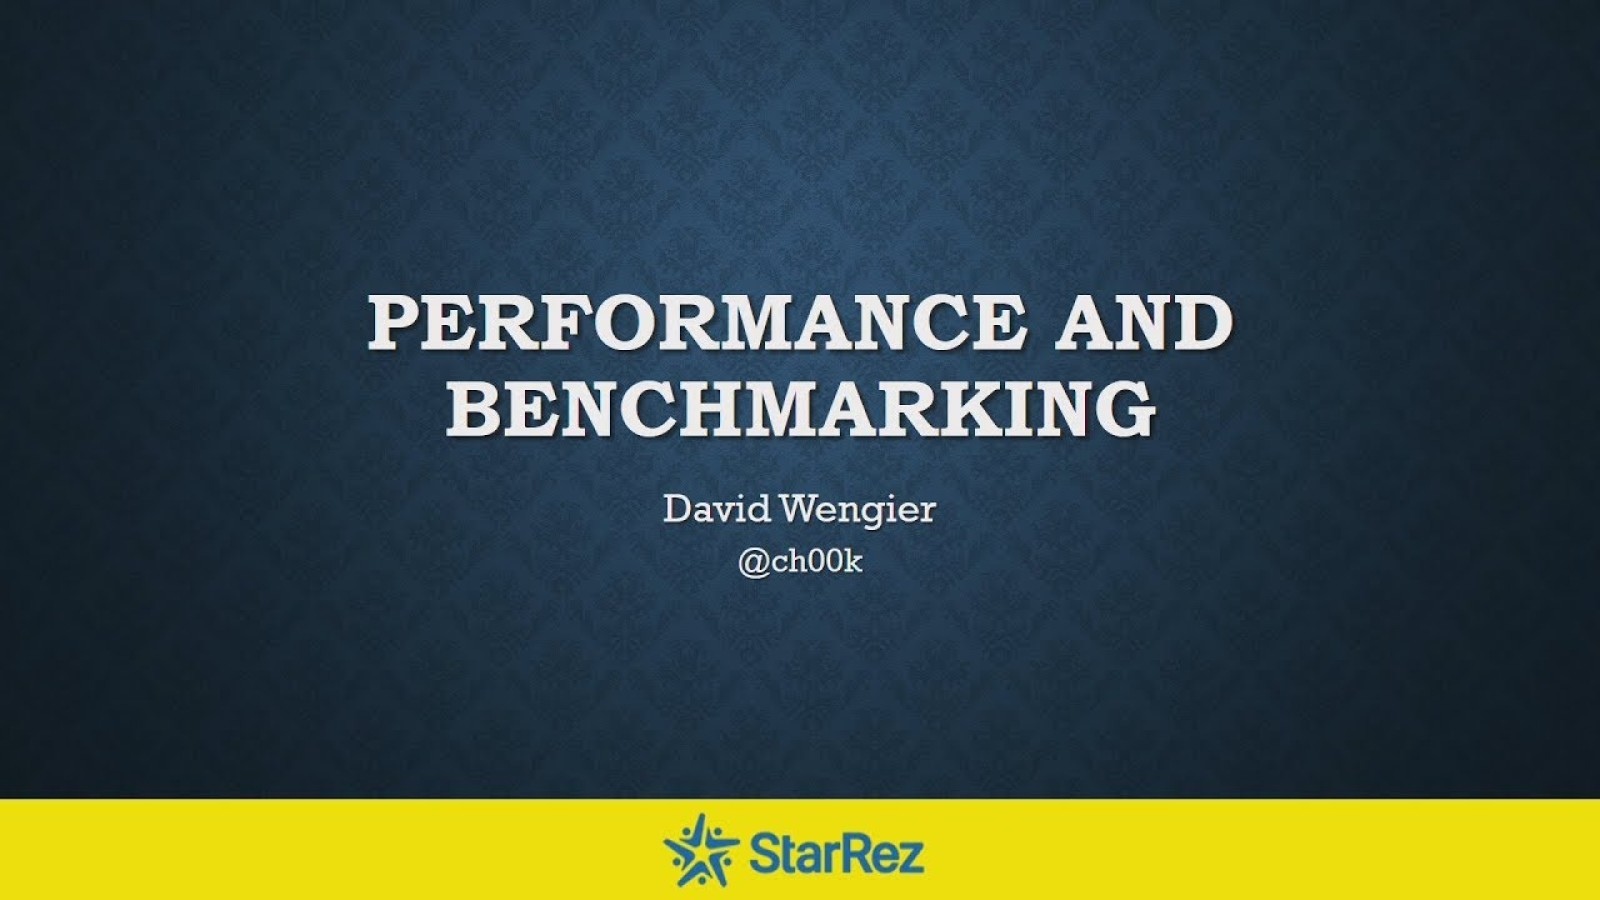 Performance and Benchmarking